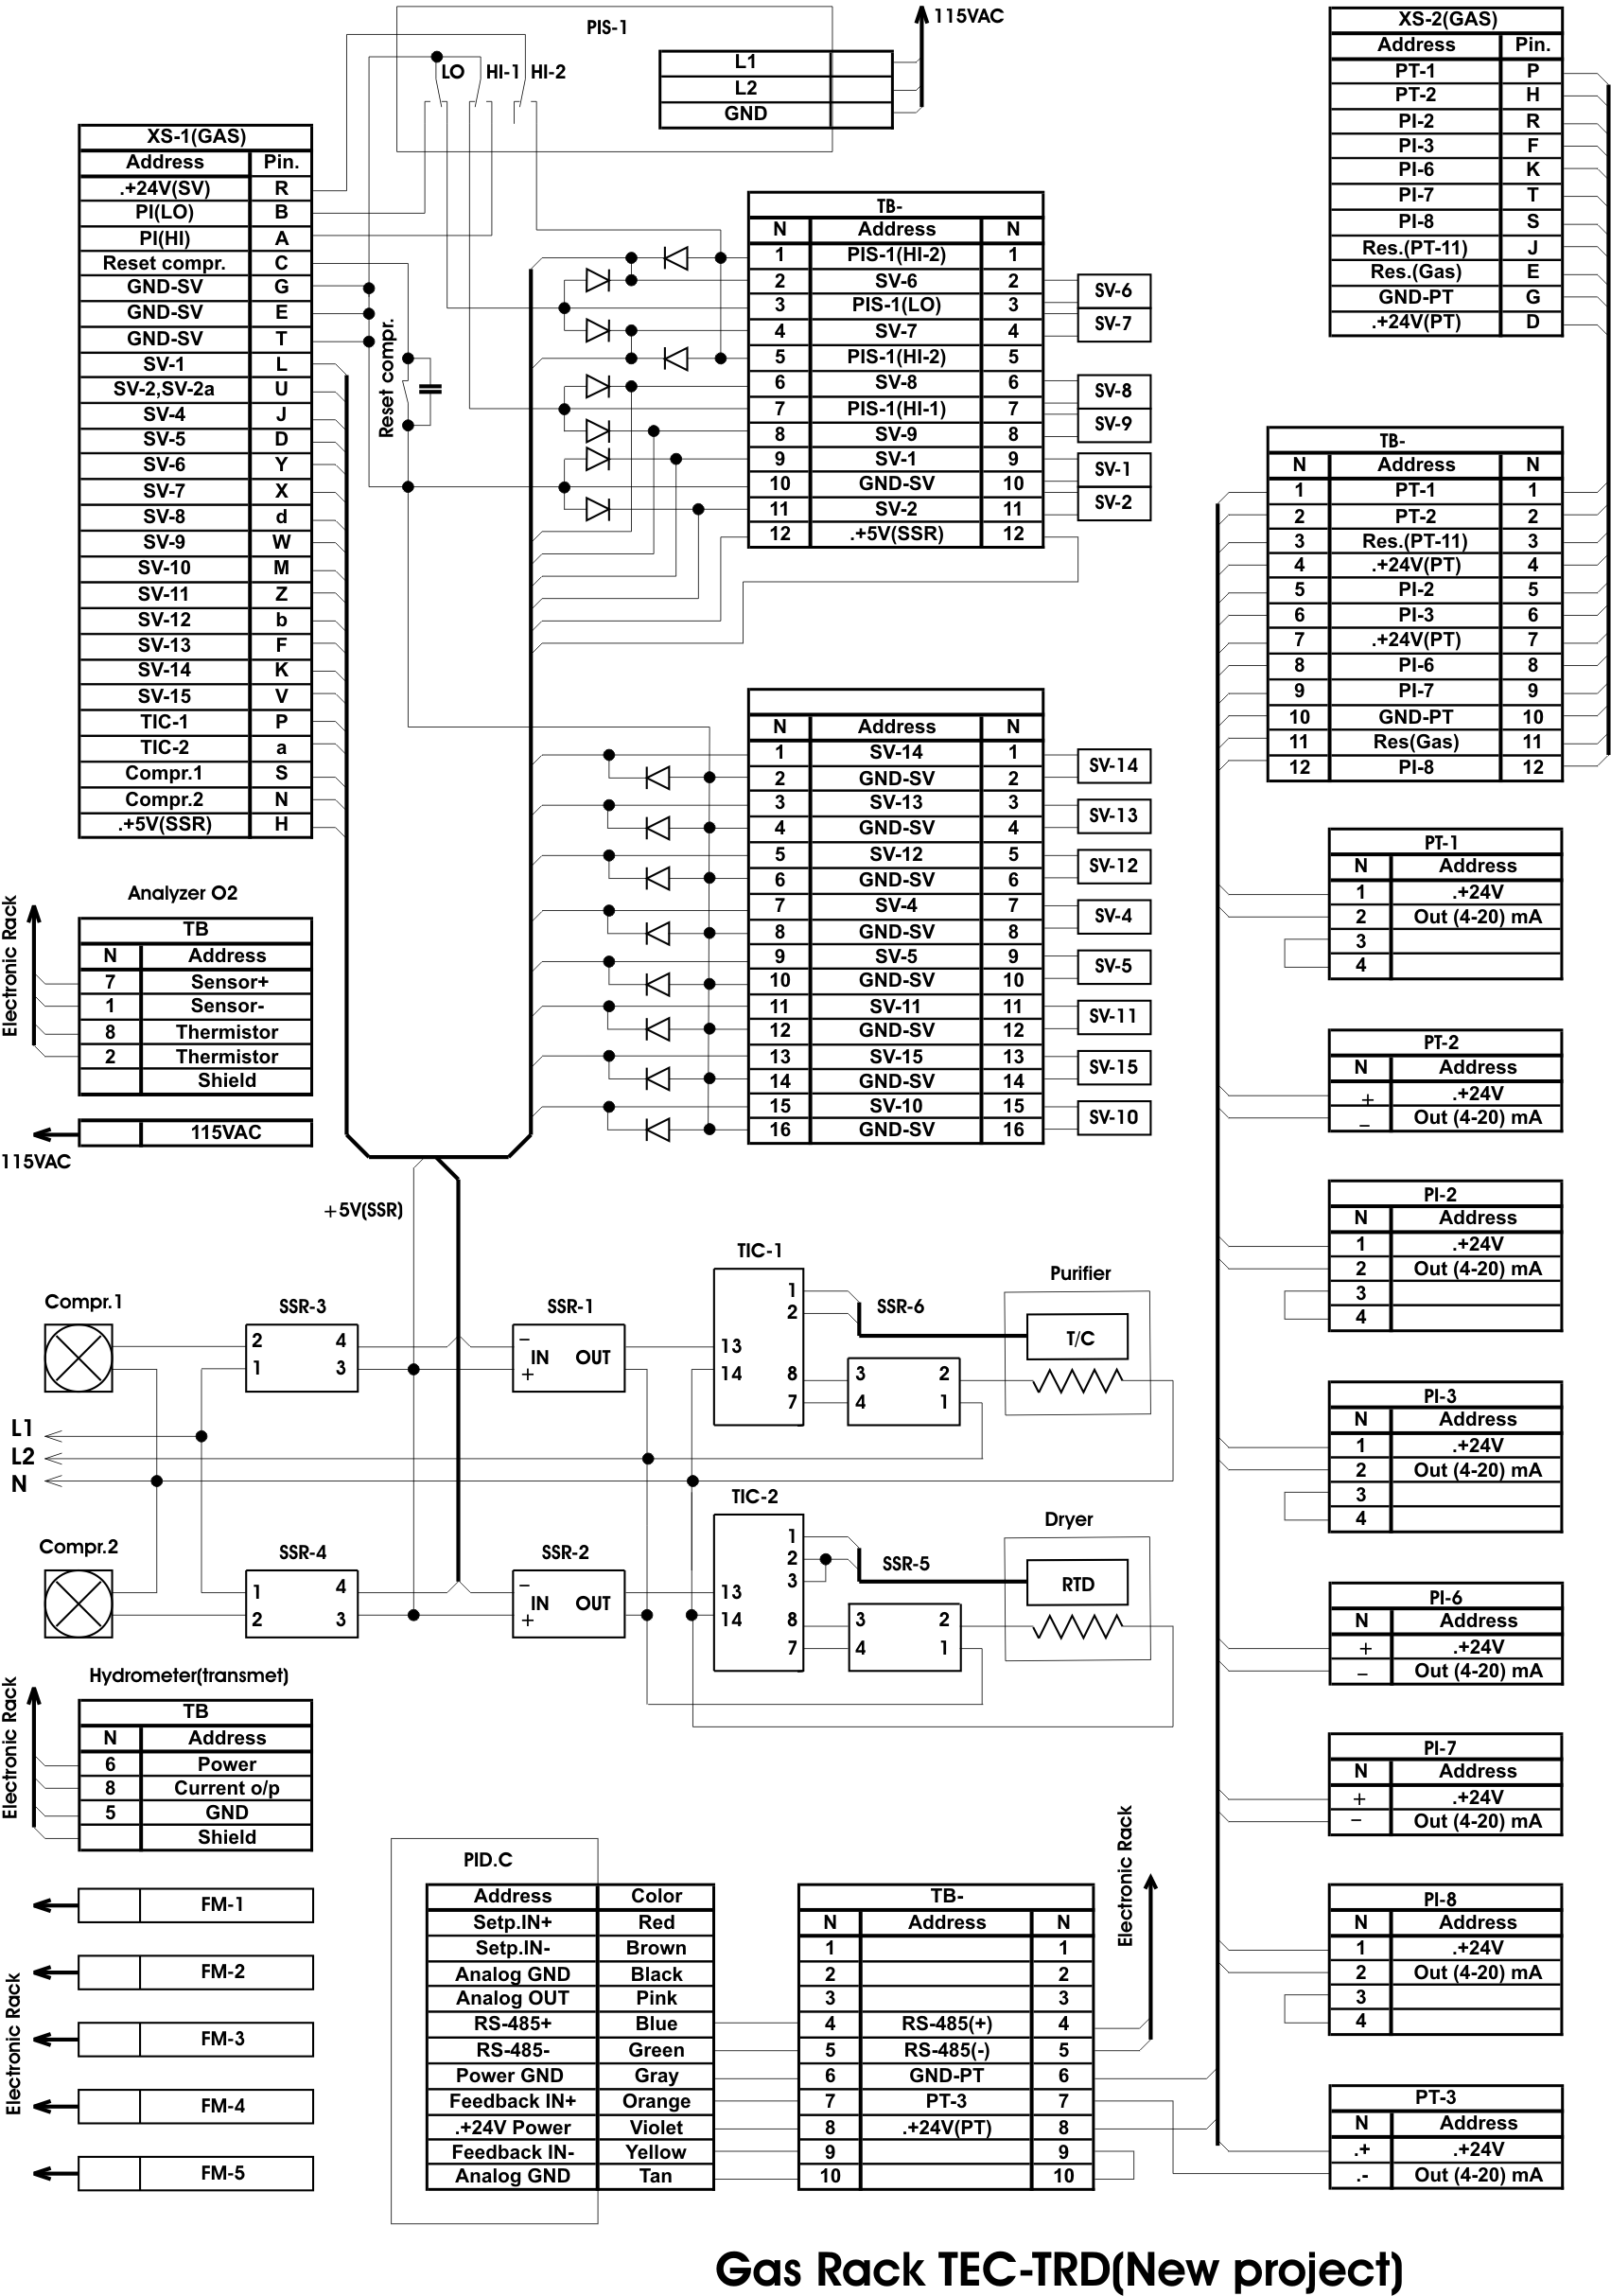 Data Center Visio Diagrams in addition Wiring Diagram Ether  Wall Plate as well Ether  Cat 5 Wiring Diagram moreover Garmin  work Cable Wiring Diagram together with Twisted Pair Cable Schematic. on cat6 ethernet wiring diagram